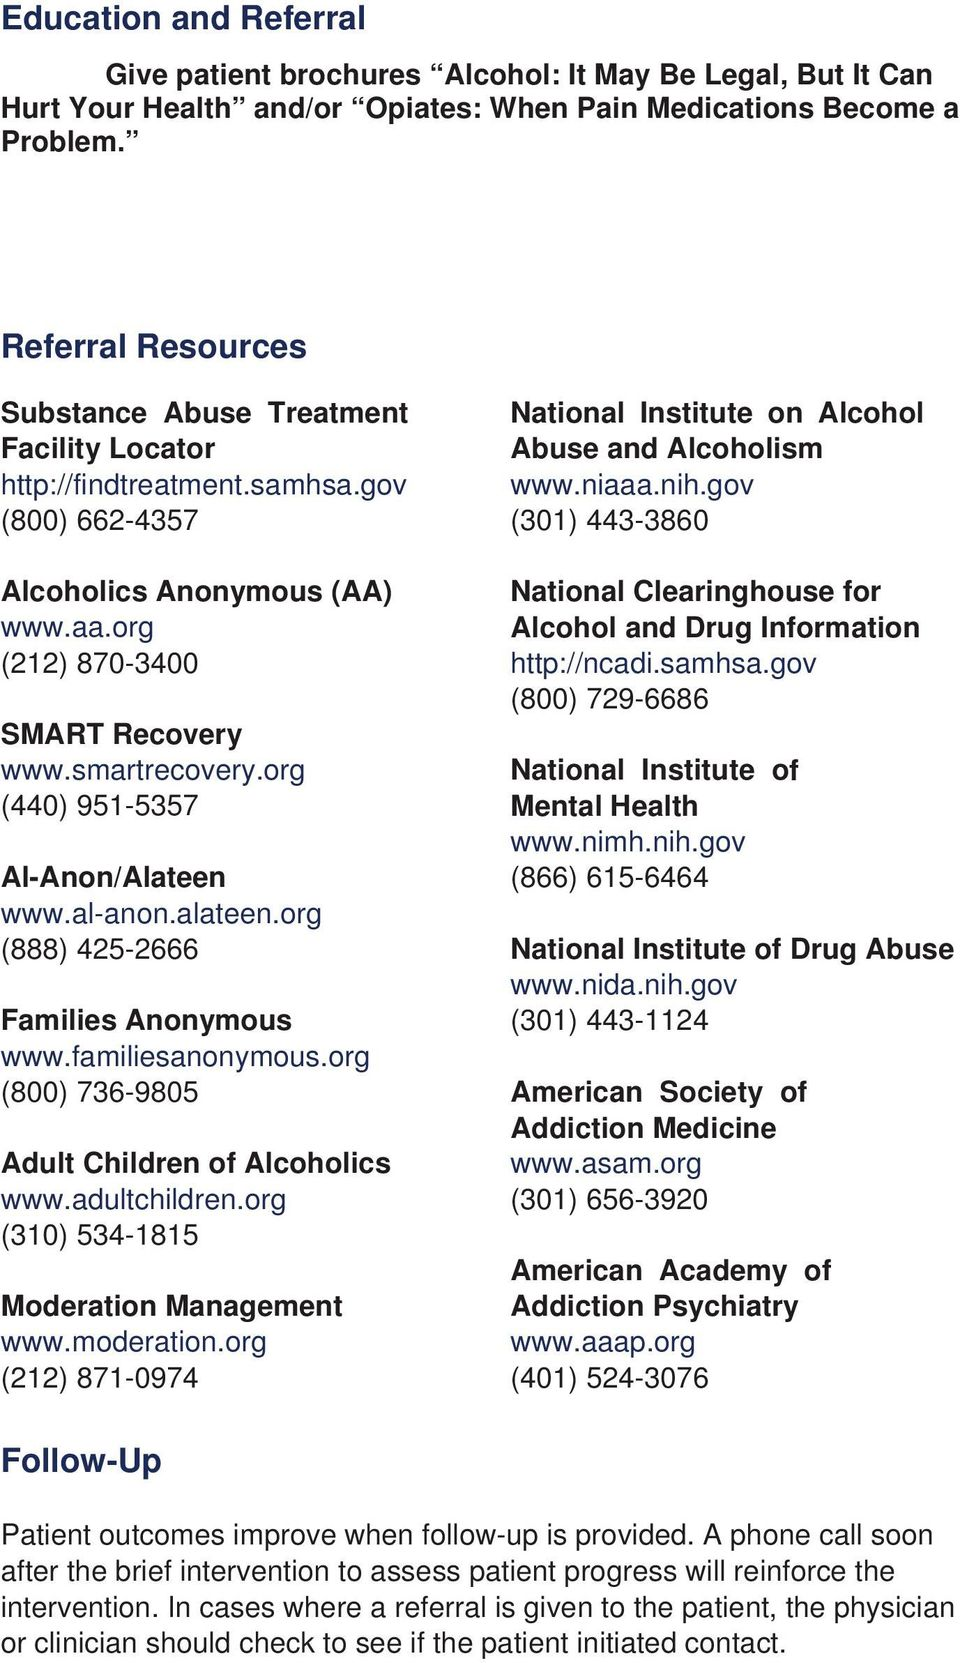 gov (800) 662-4357 (301) 443-3860 Alcoholics Anonymous (AA) National Clearinghouse for www.aa.org Alcohol and Drug Information (212) 870-3400 http://ncadi.samhsa.gov (800) 729-6686 SMART Recovery www.